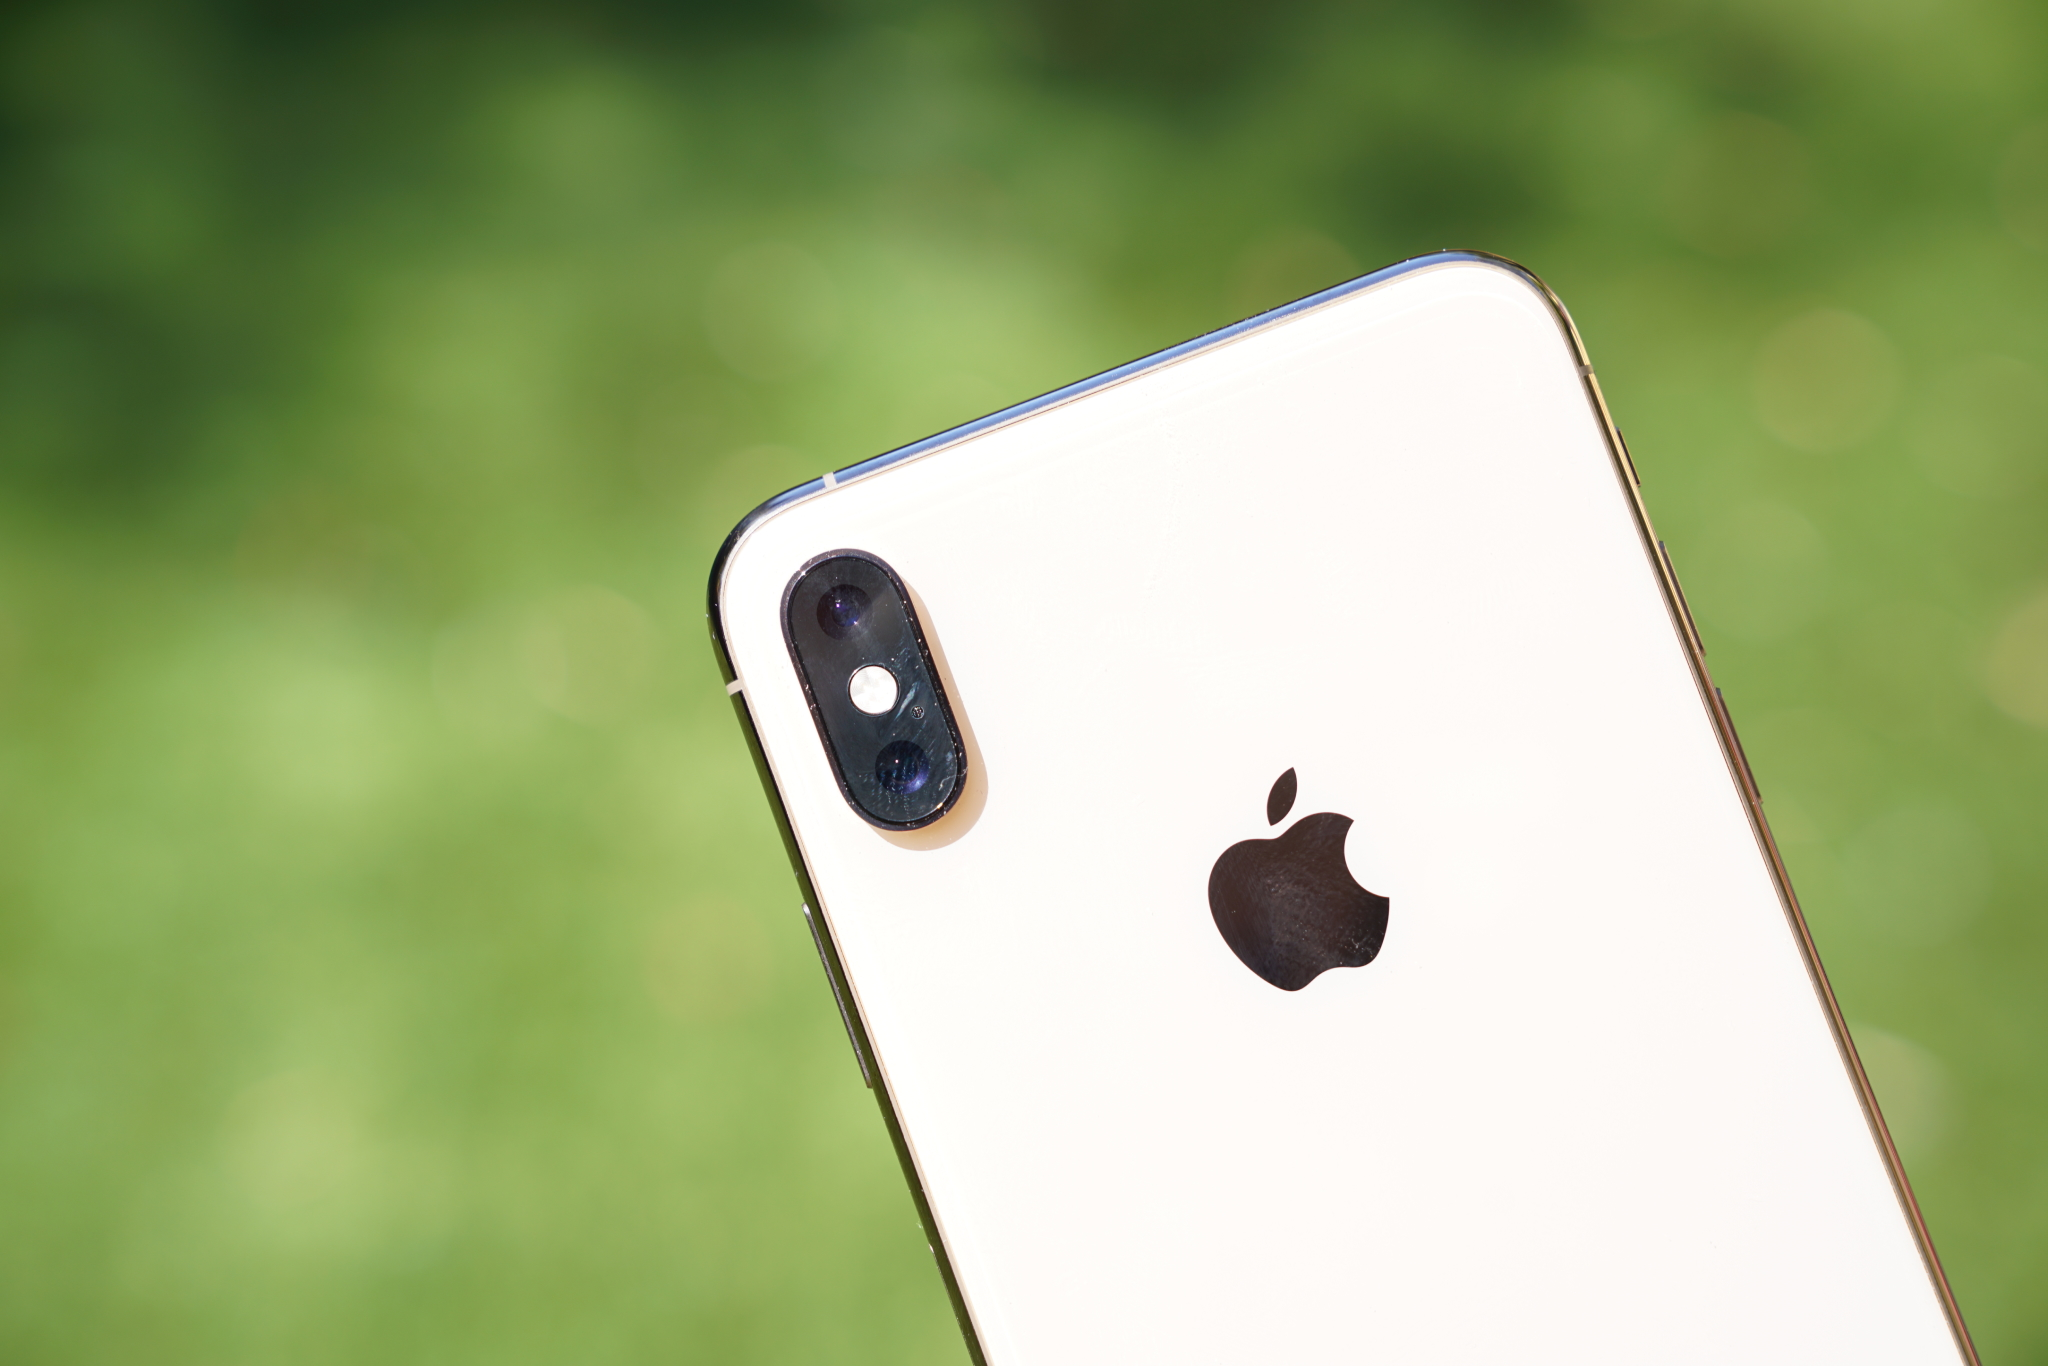 10 Common iPhone XS Problems & How to Fix Them